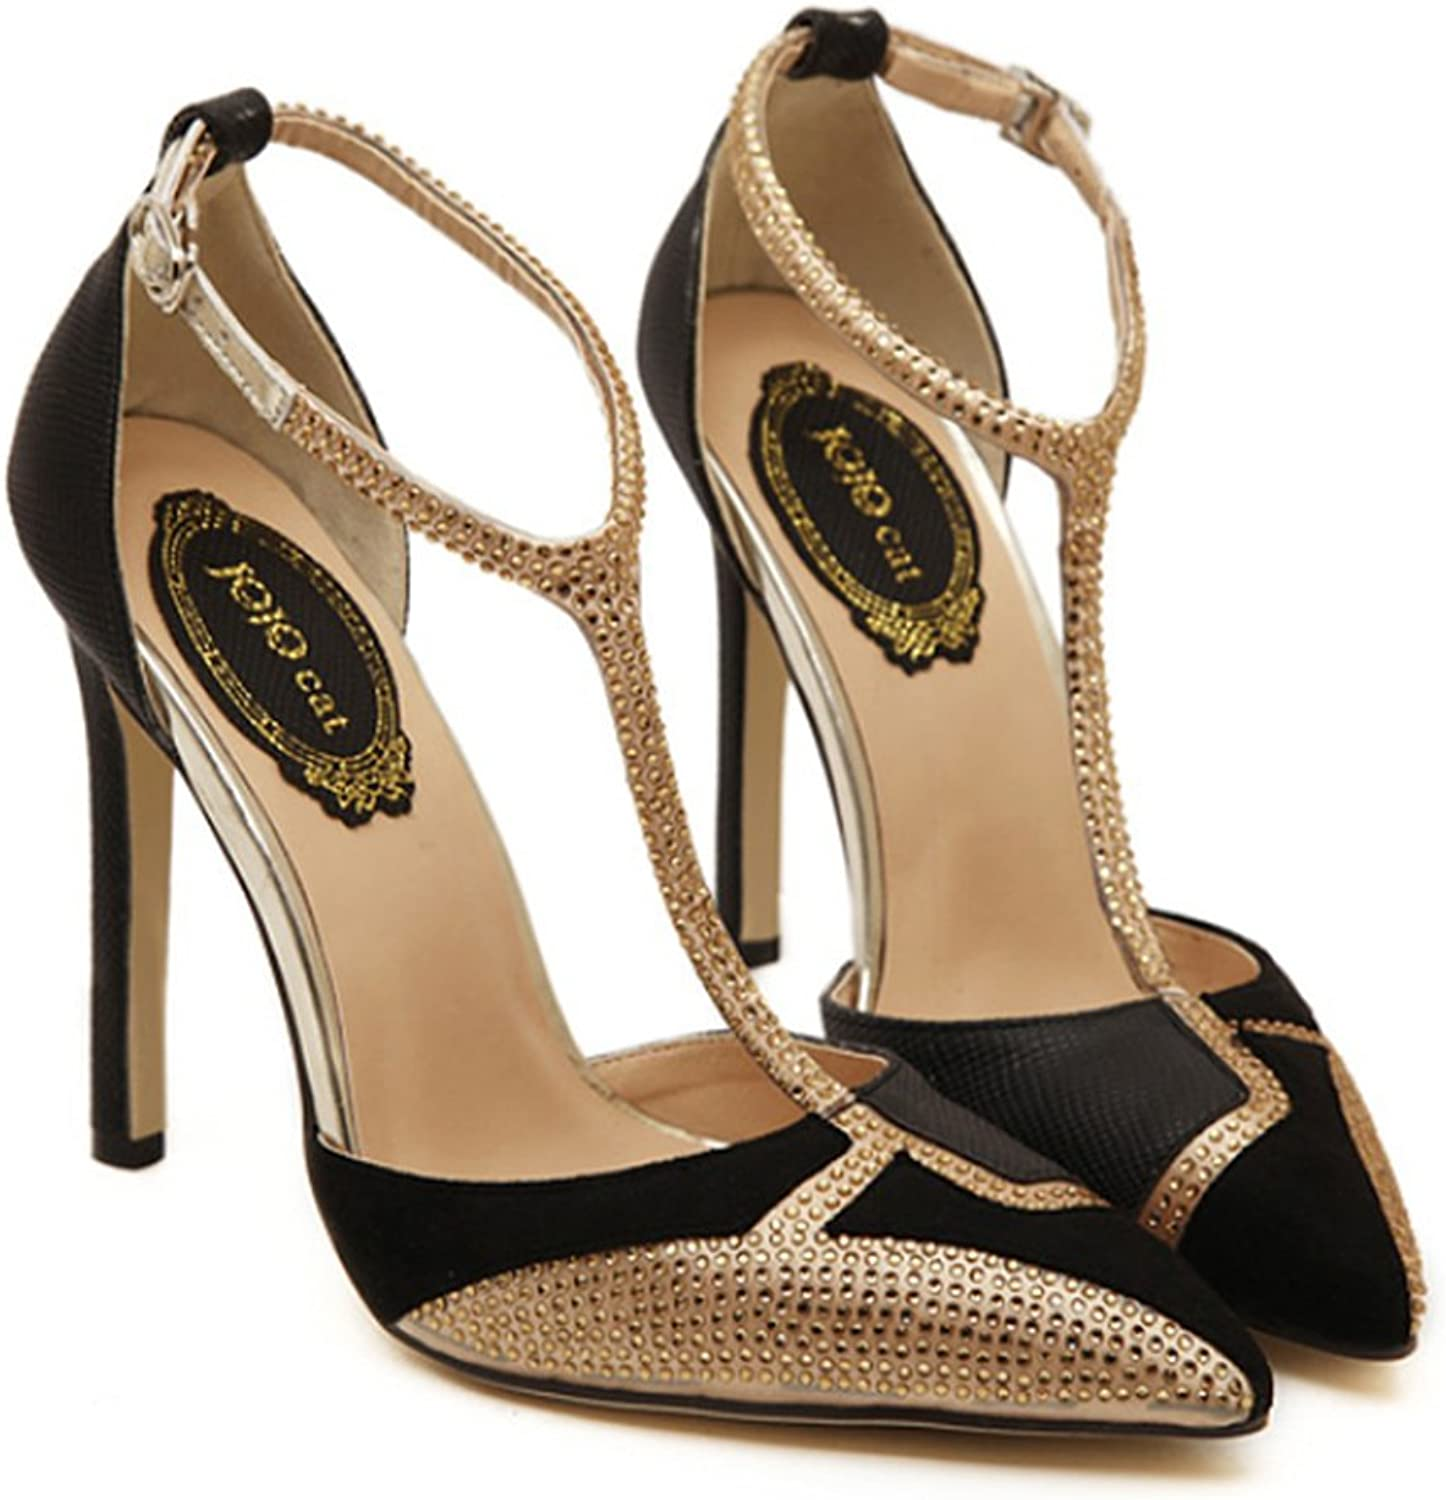 Rhinestone Chromatic color Pointed High Heel shoes Sandals black 39